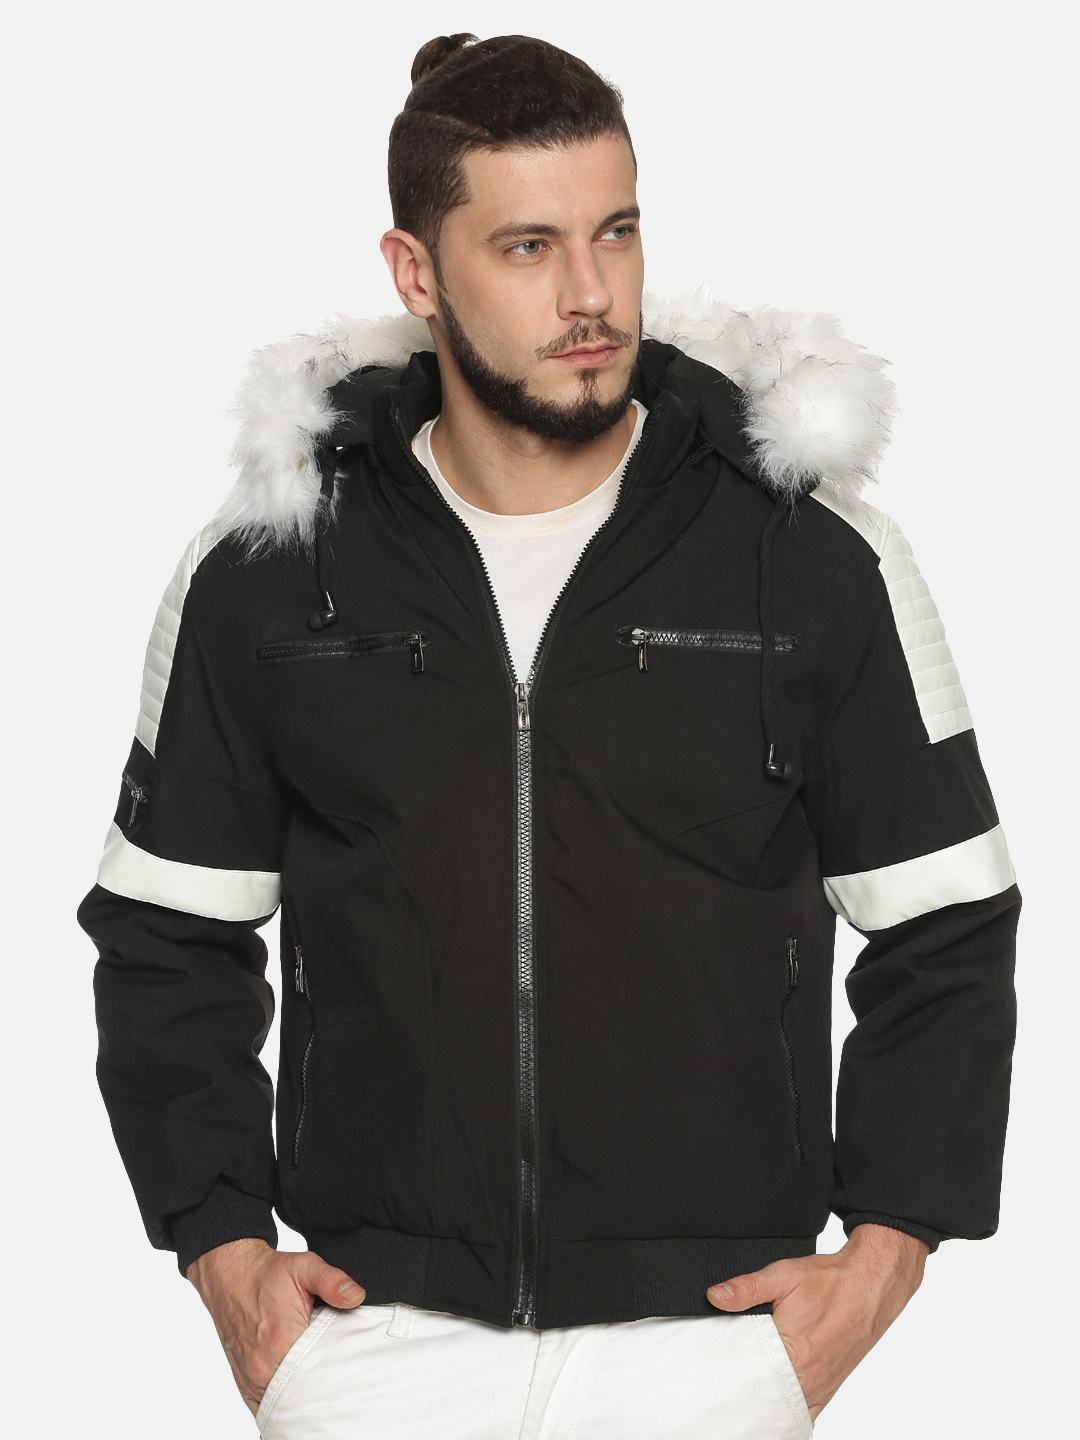 Showoff | Men Black& White Solid Bomber Jackets with Detachable Hood